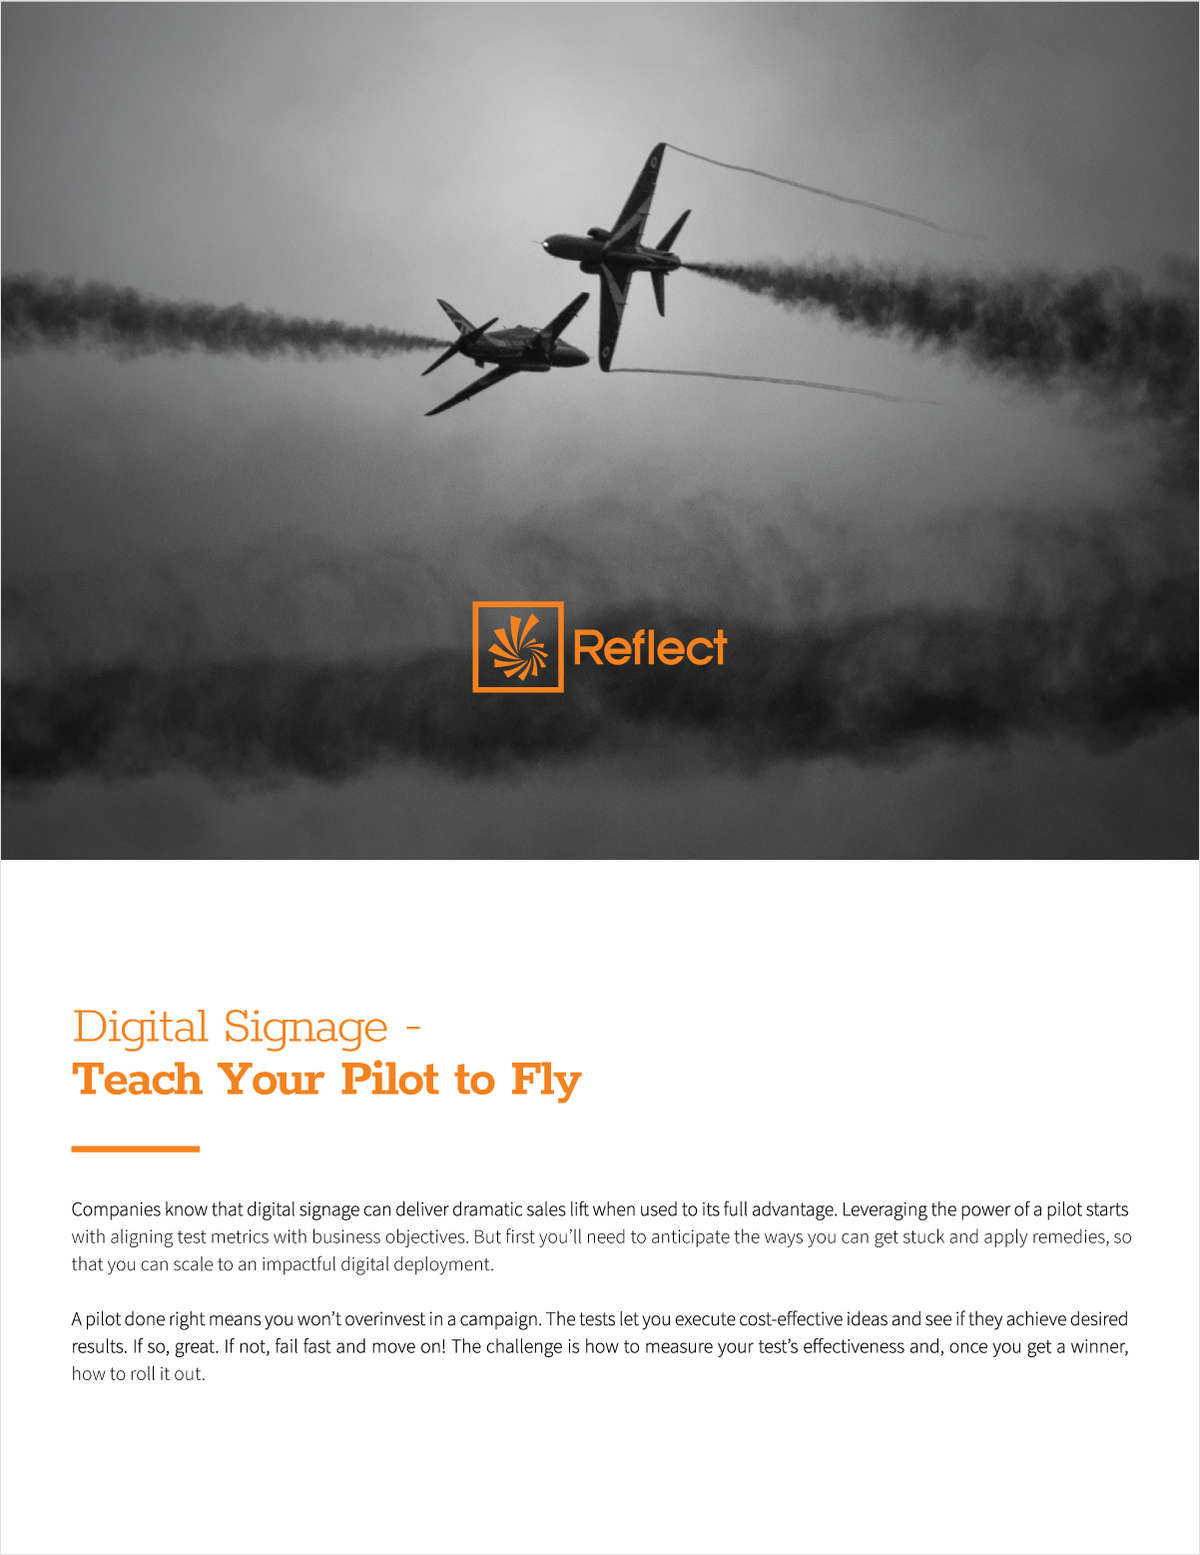 Digital Signage - Teach Your Pilot to Fly